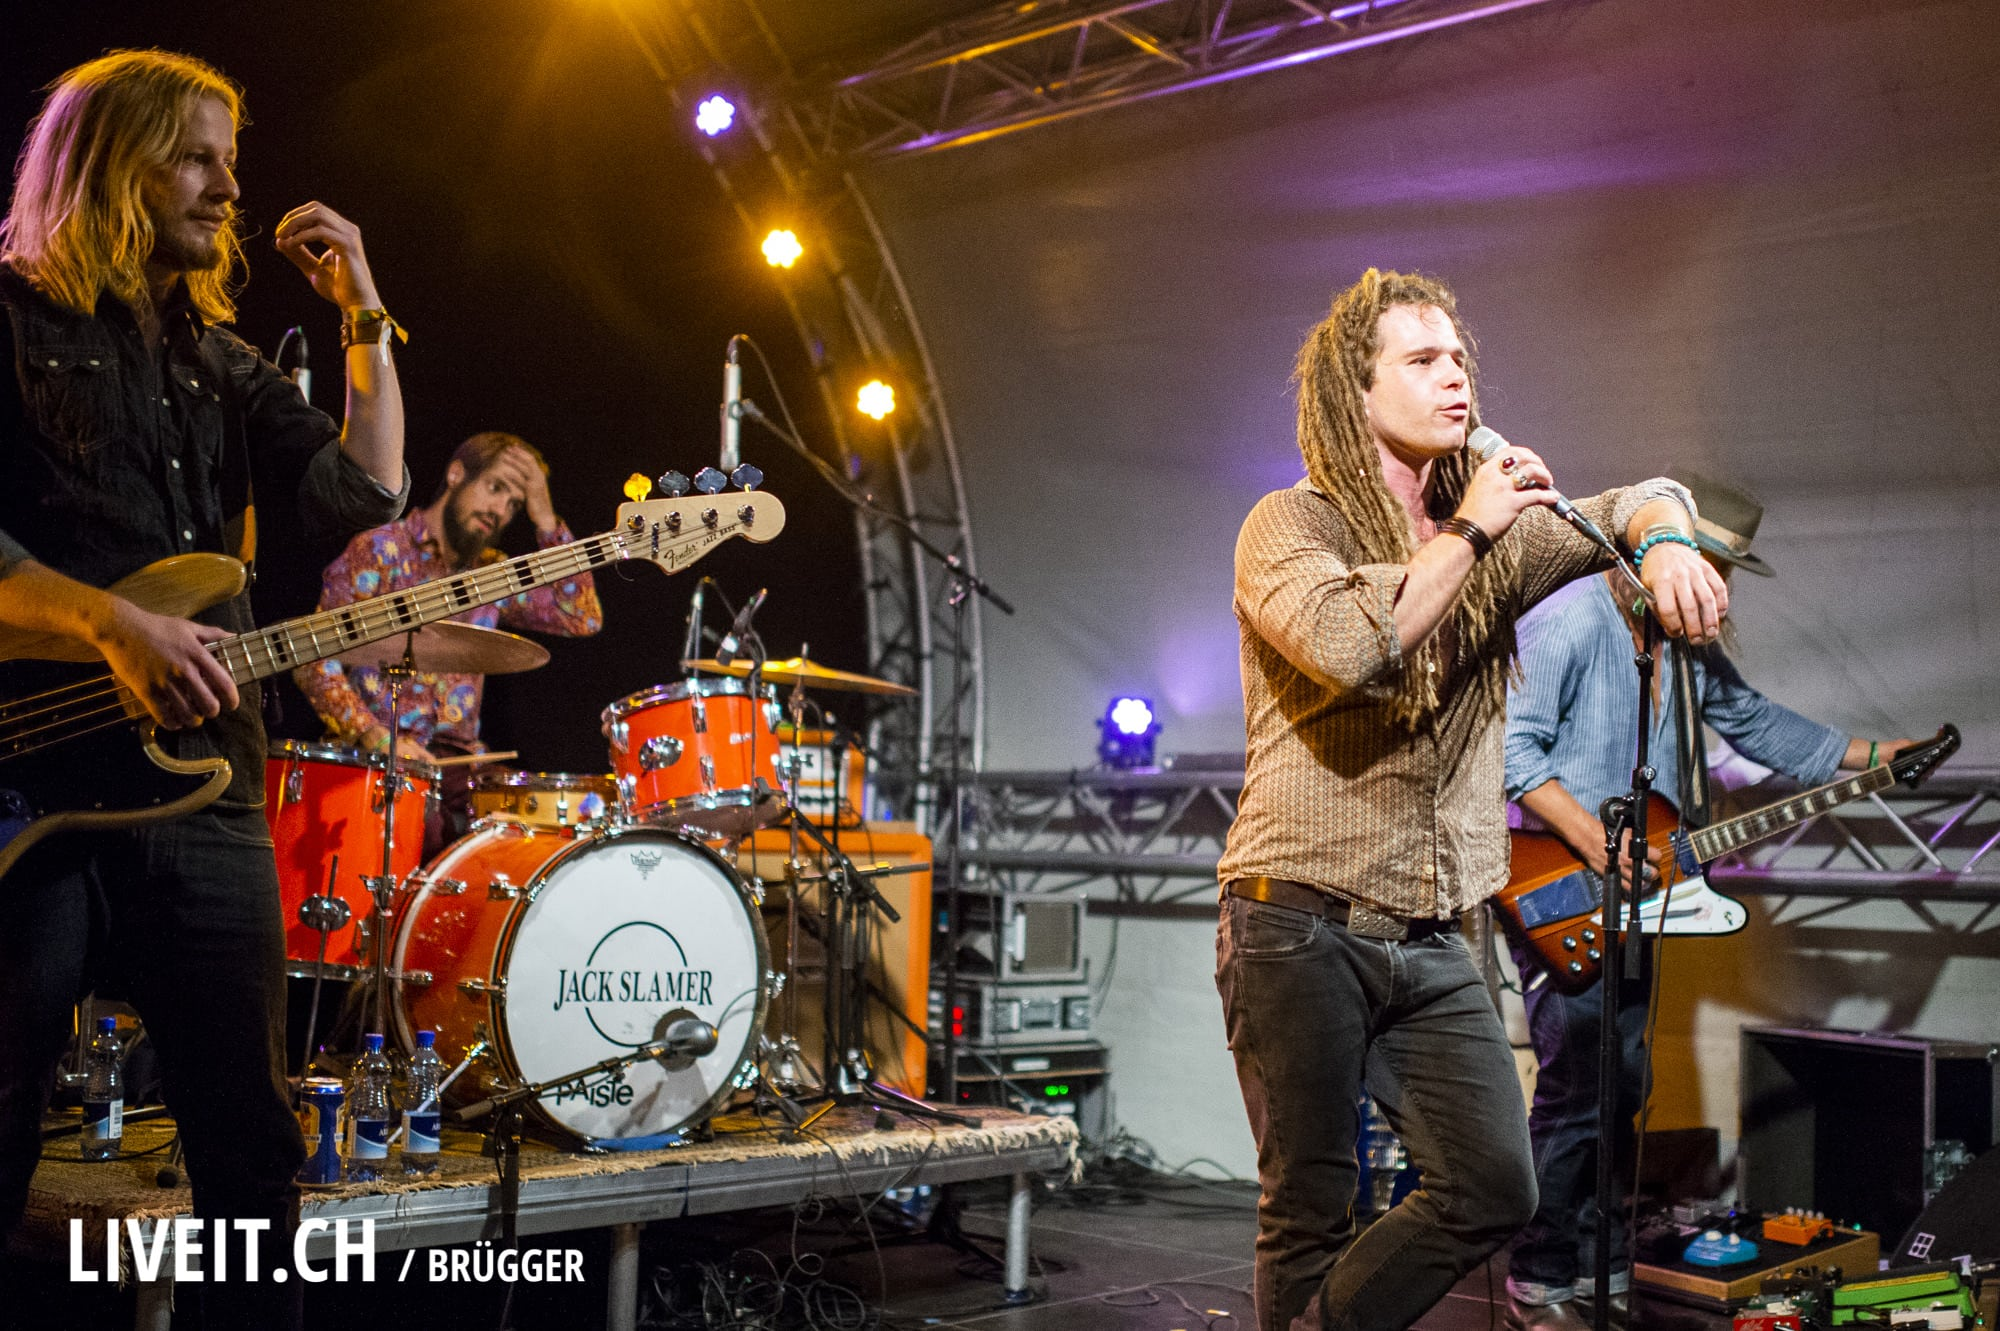 Jack Slamer Thunfest 2018 in Thun. (Dominic Bruegger for liveit.ch)